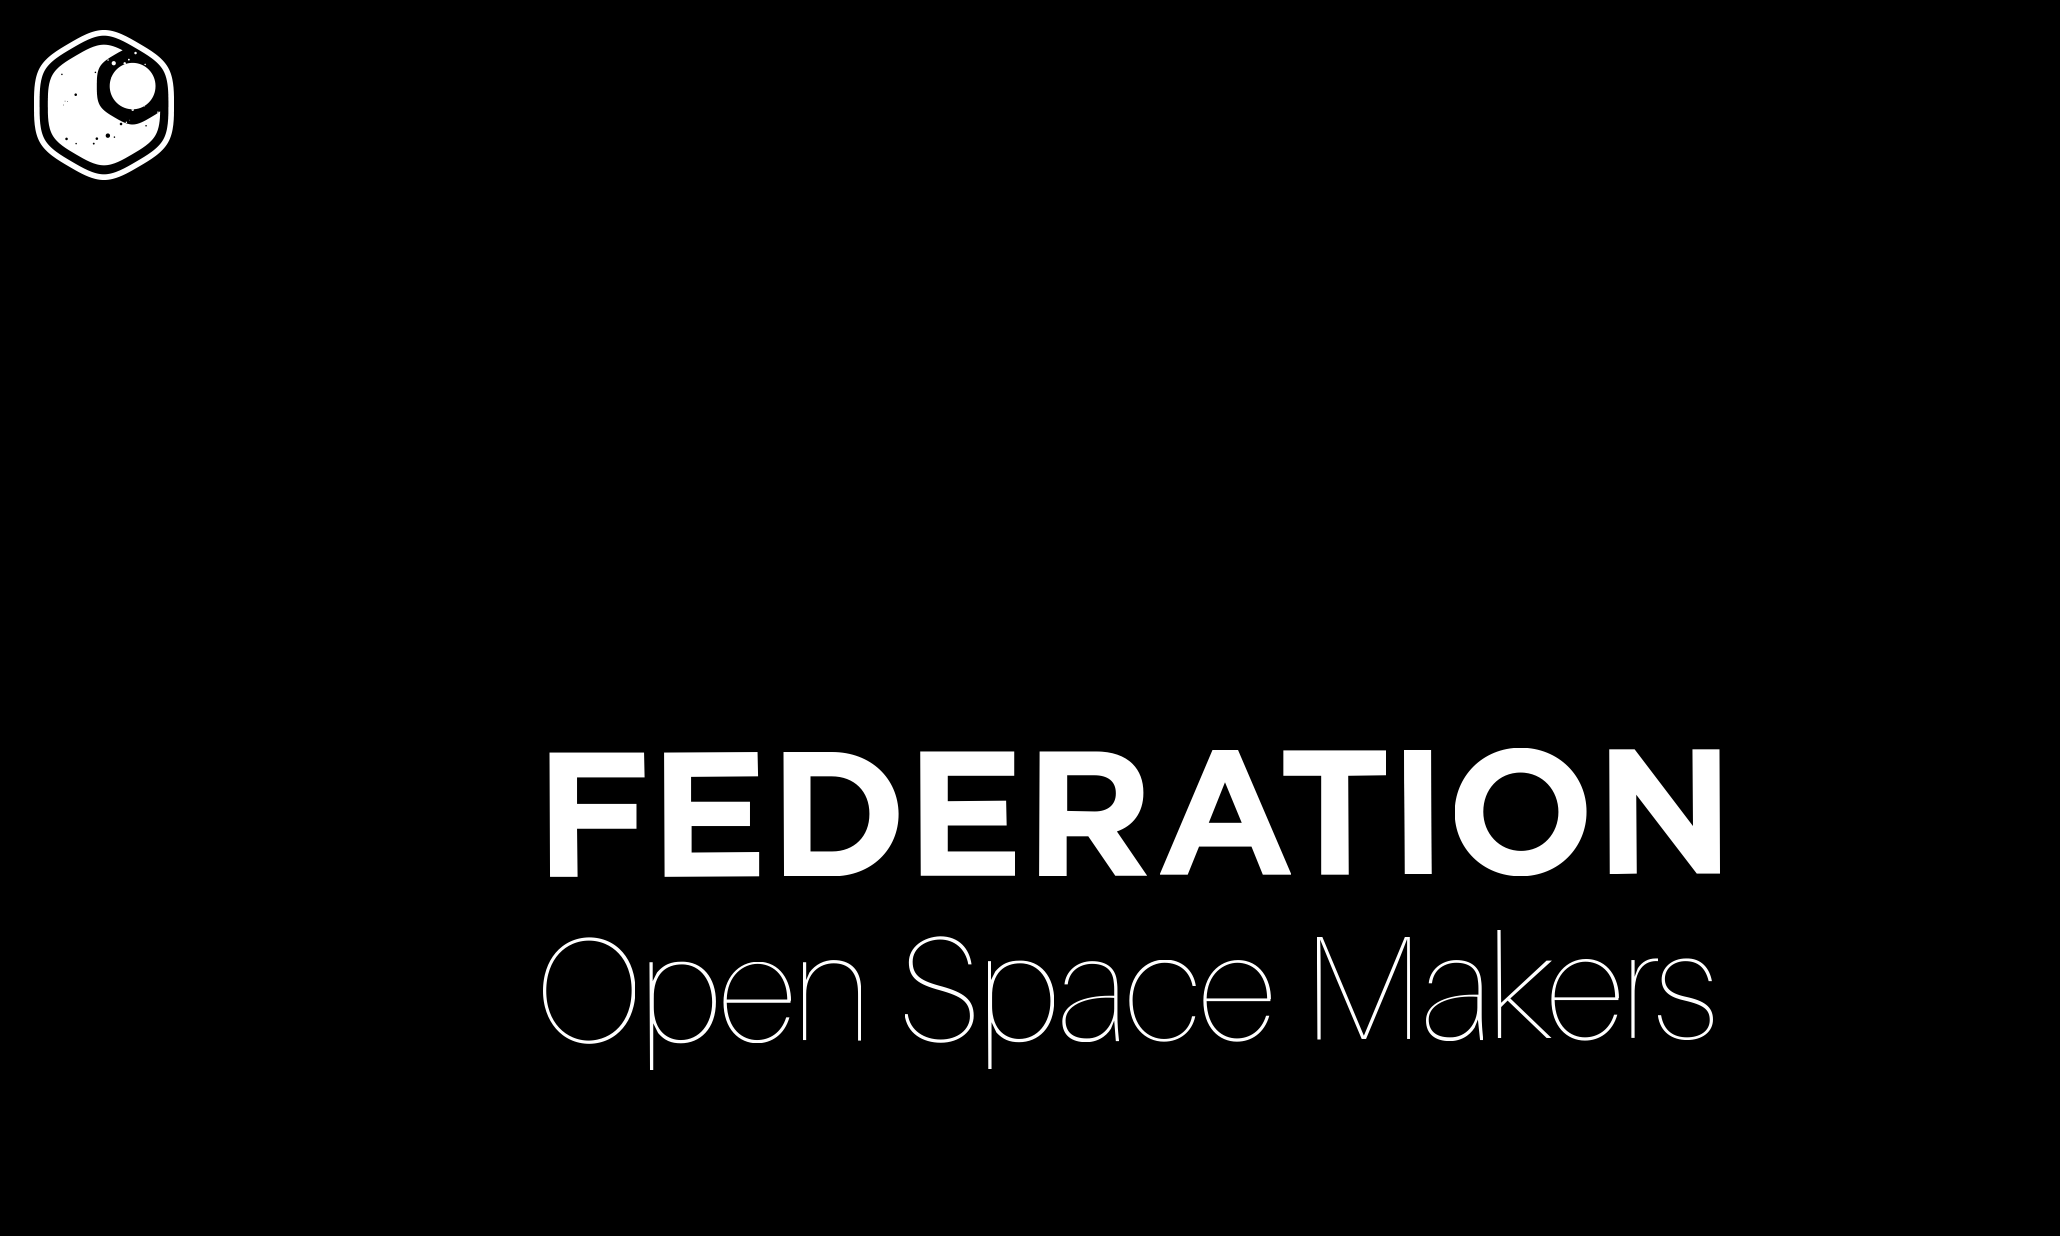 federation_openspacemakers.png